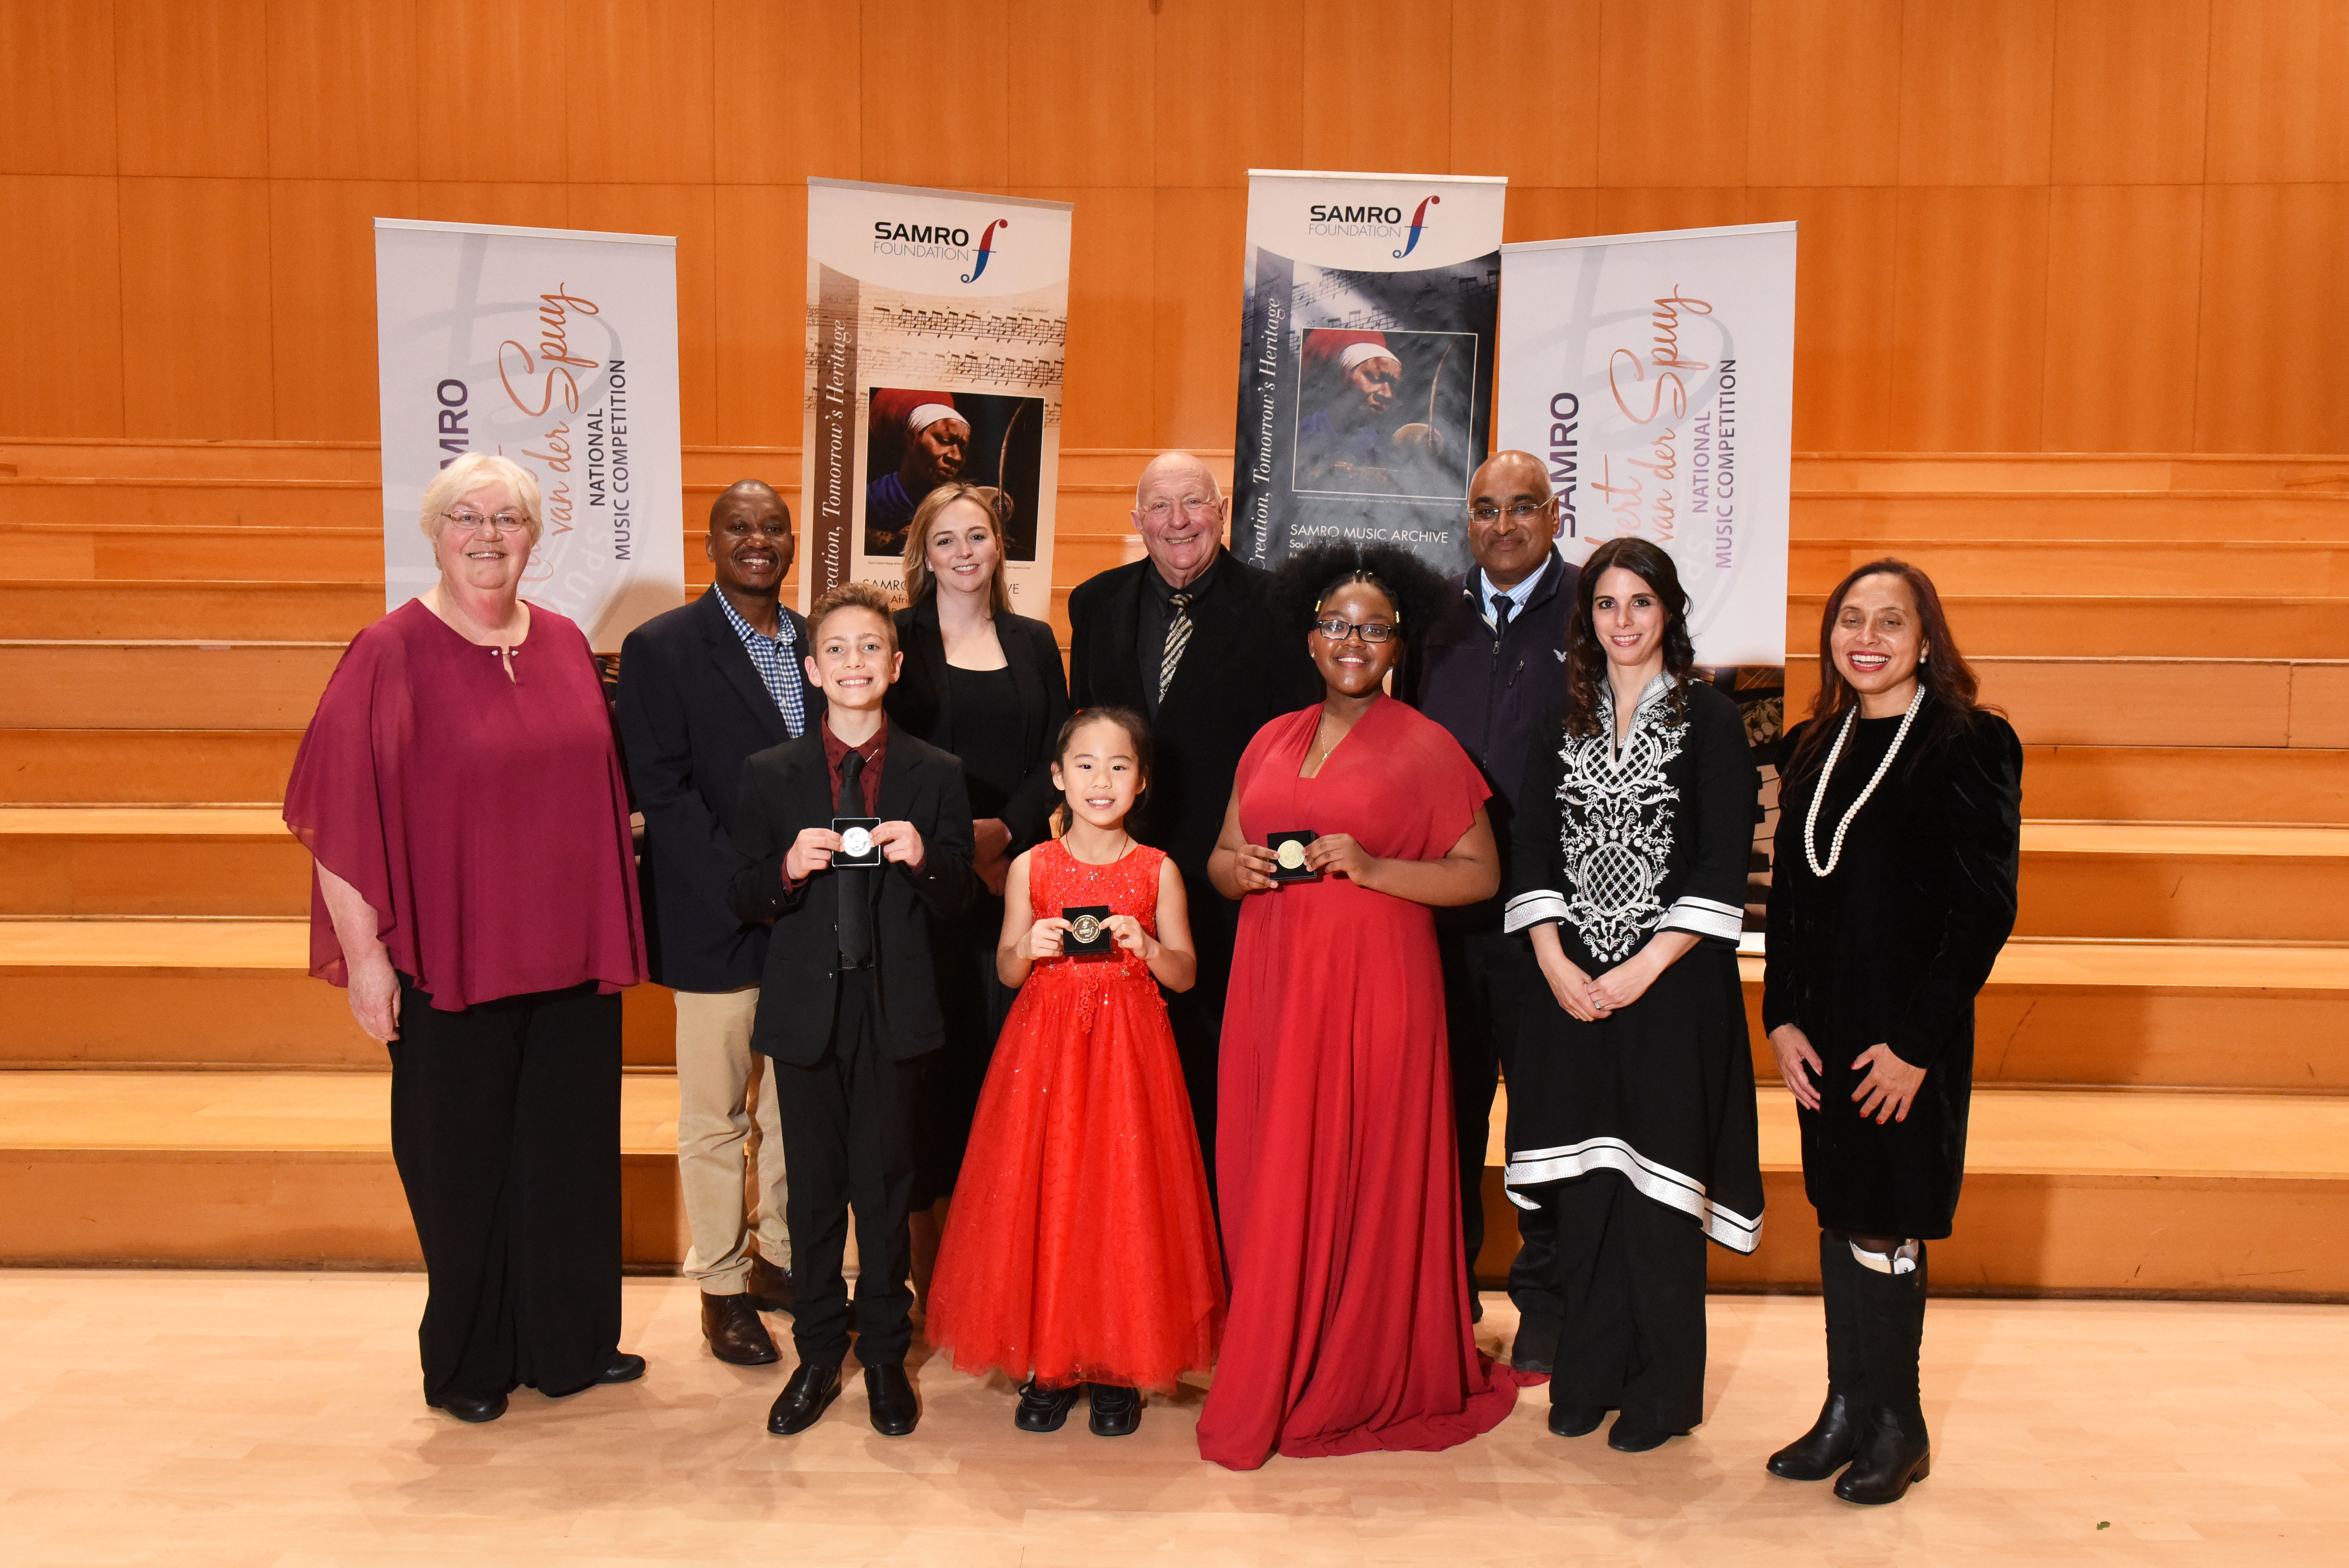 Congratulations to the 2018 SAMRO Hubert van der Spuy Competition winners